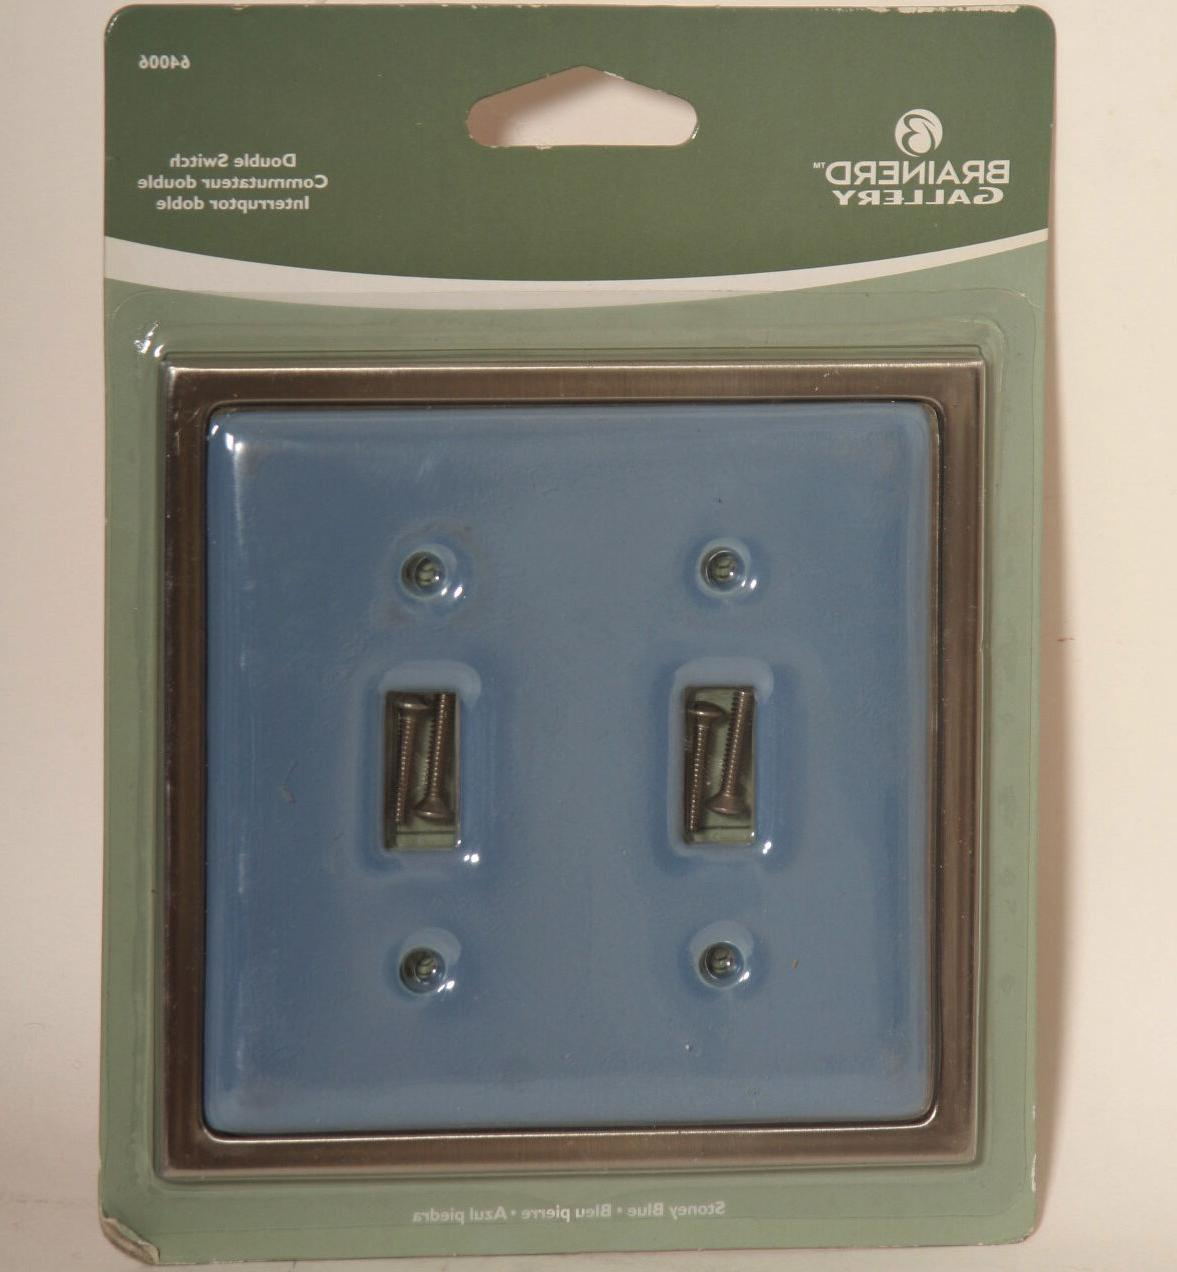 Stoney Blue Ceramic Brushed Nickel Double Light Switch Wallp